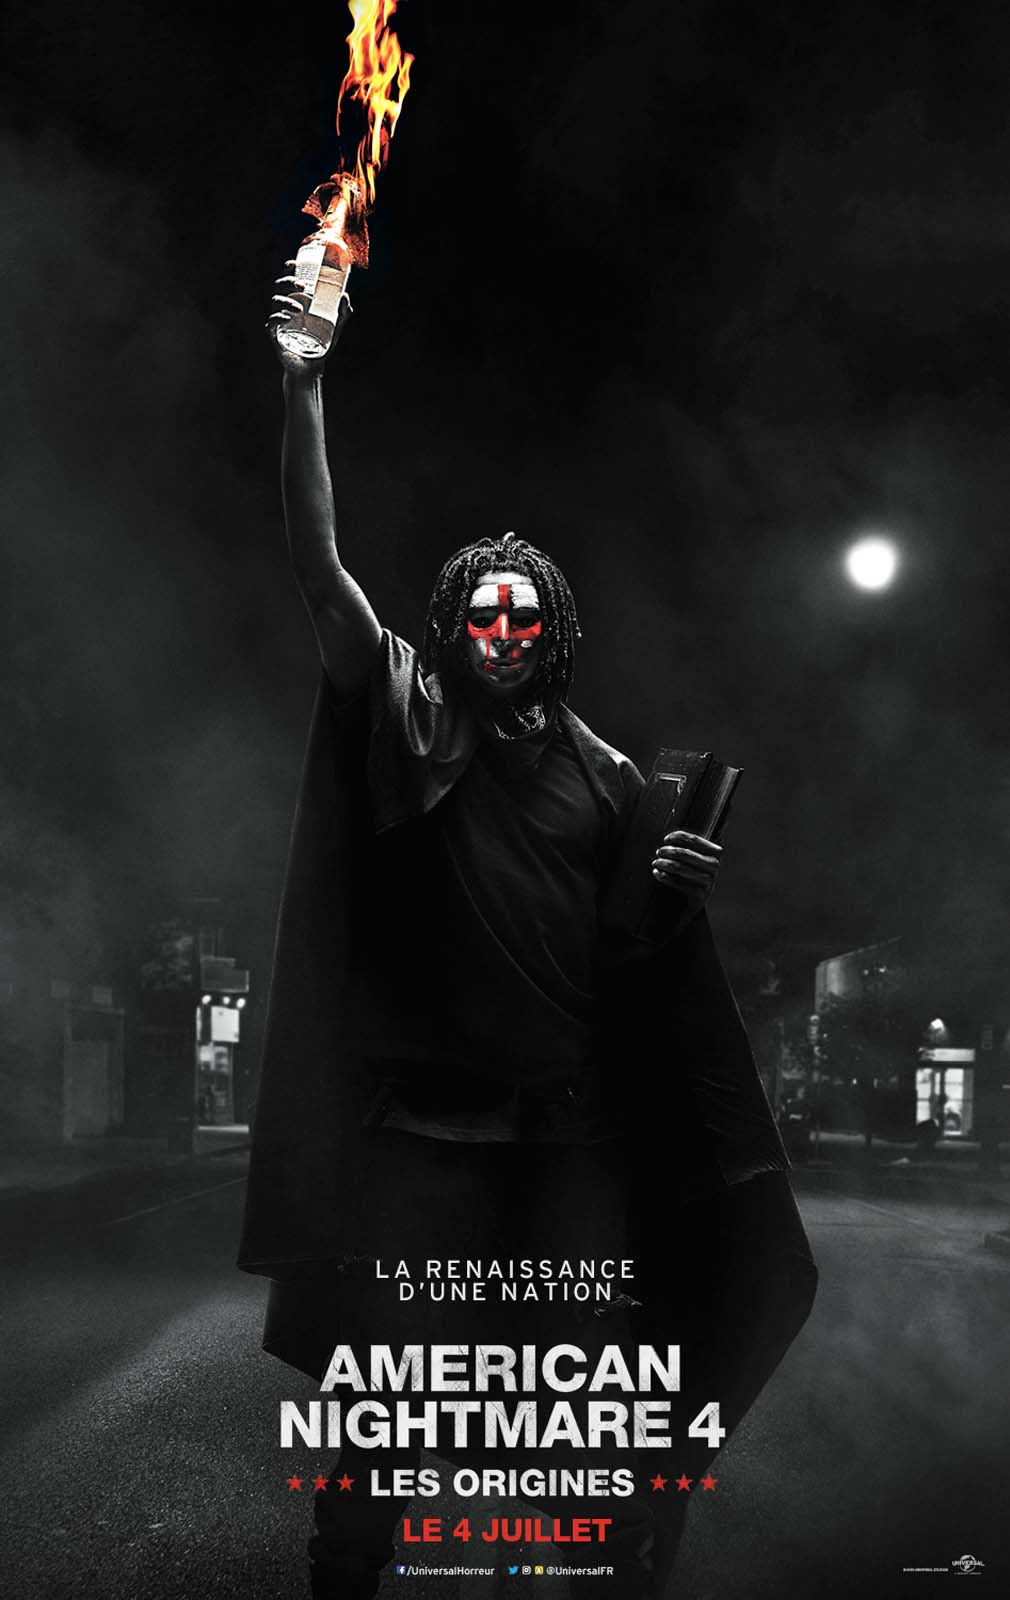 American Nightmare 4 : Les origines (the first purge)